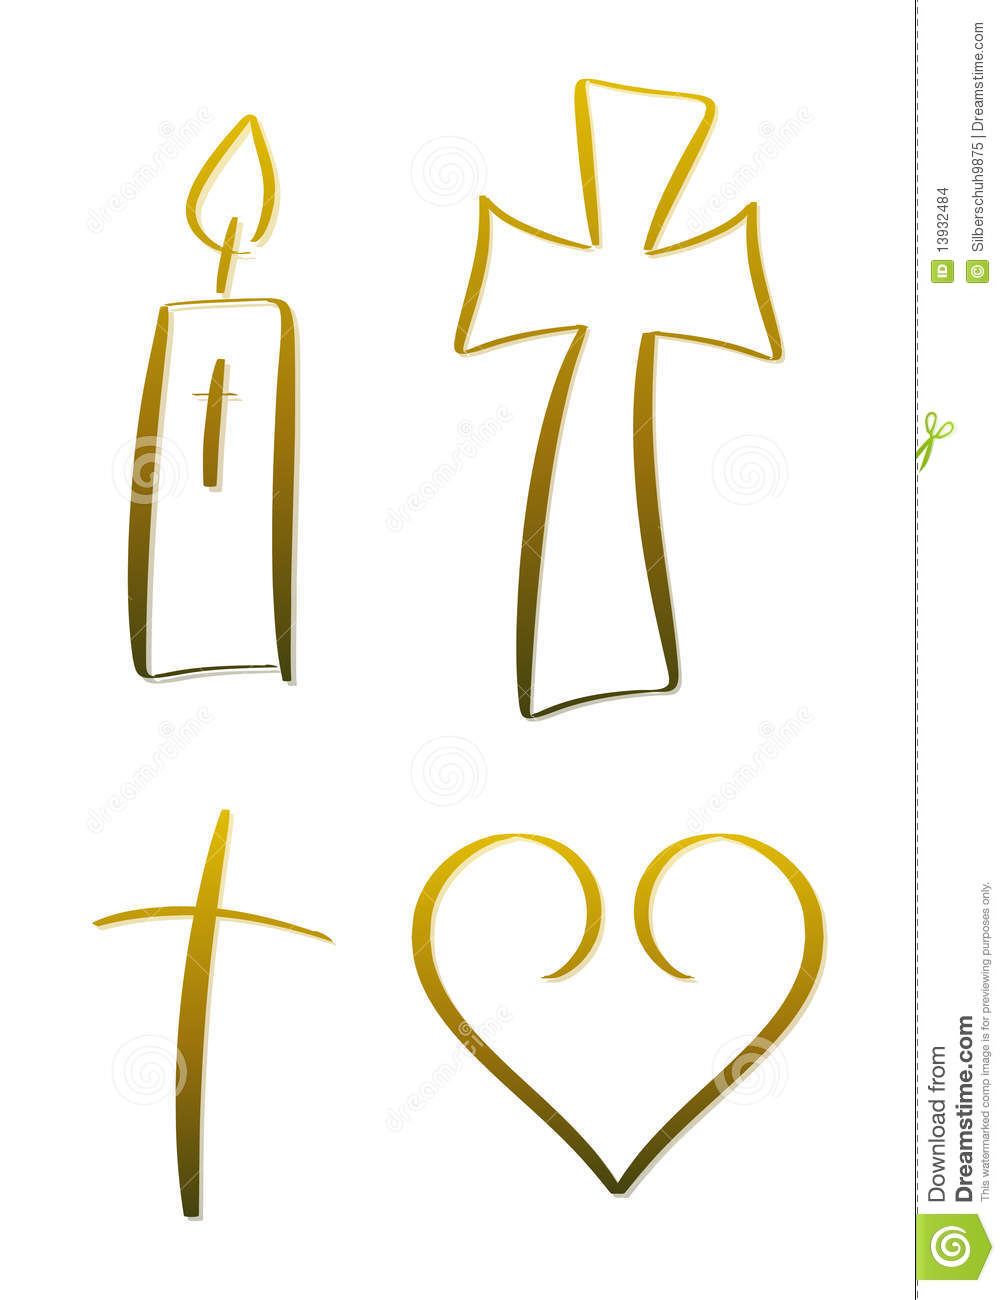 Christian Symbols Stock Images  Image 13932484